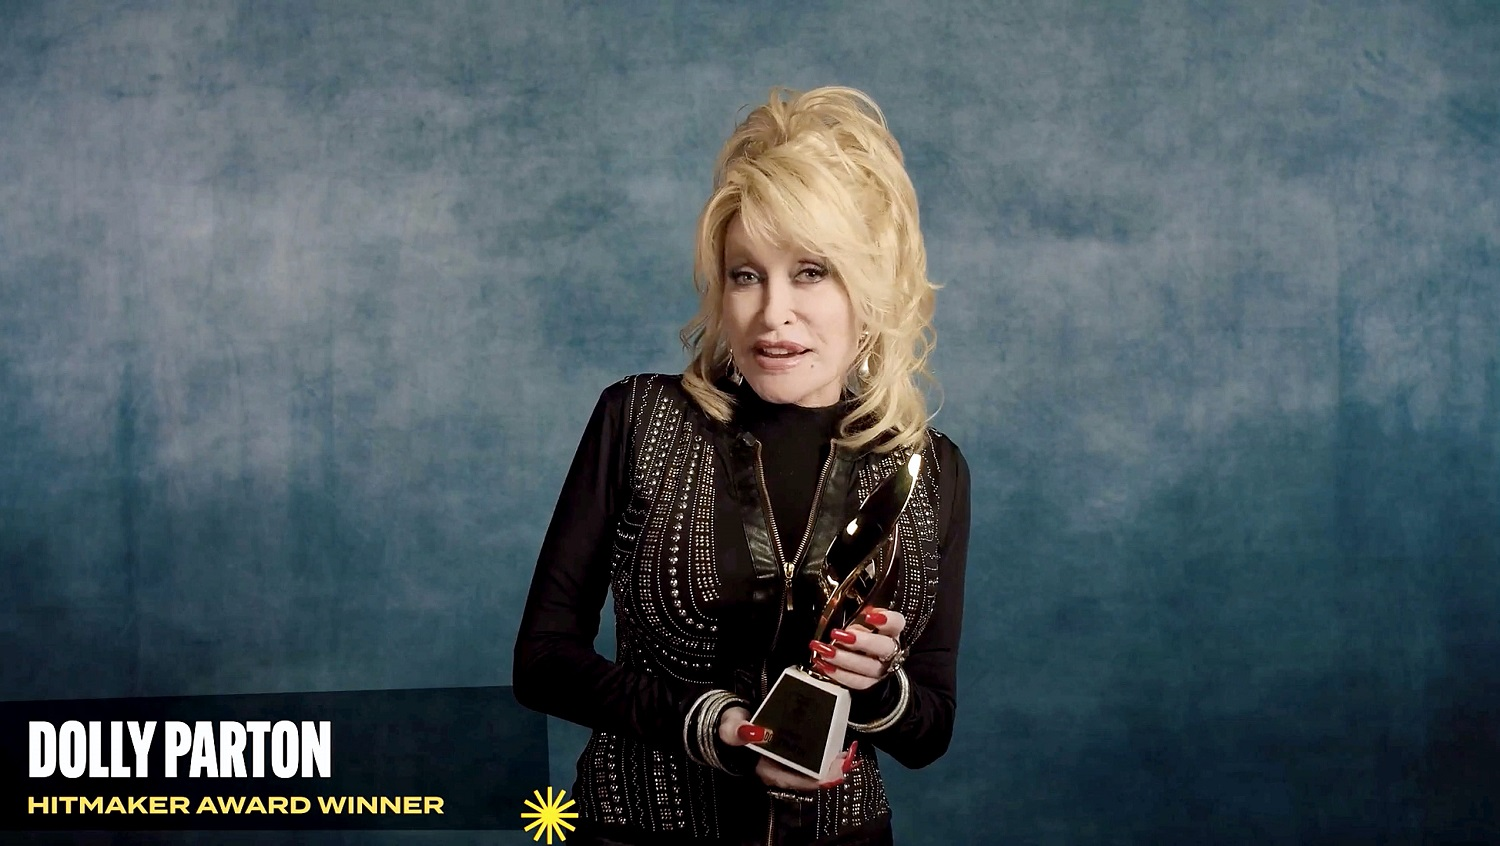 Dolly Parton accepts the Hitmaker Award during the Billboard Women In Music 2020 event on December 10, 2020.